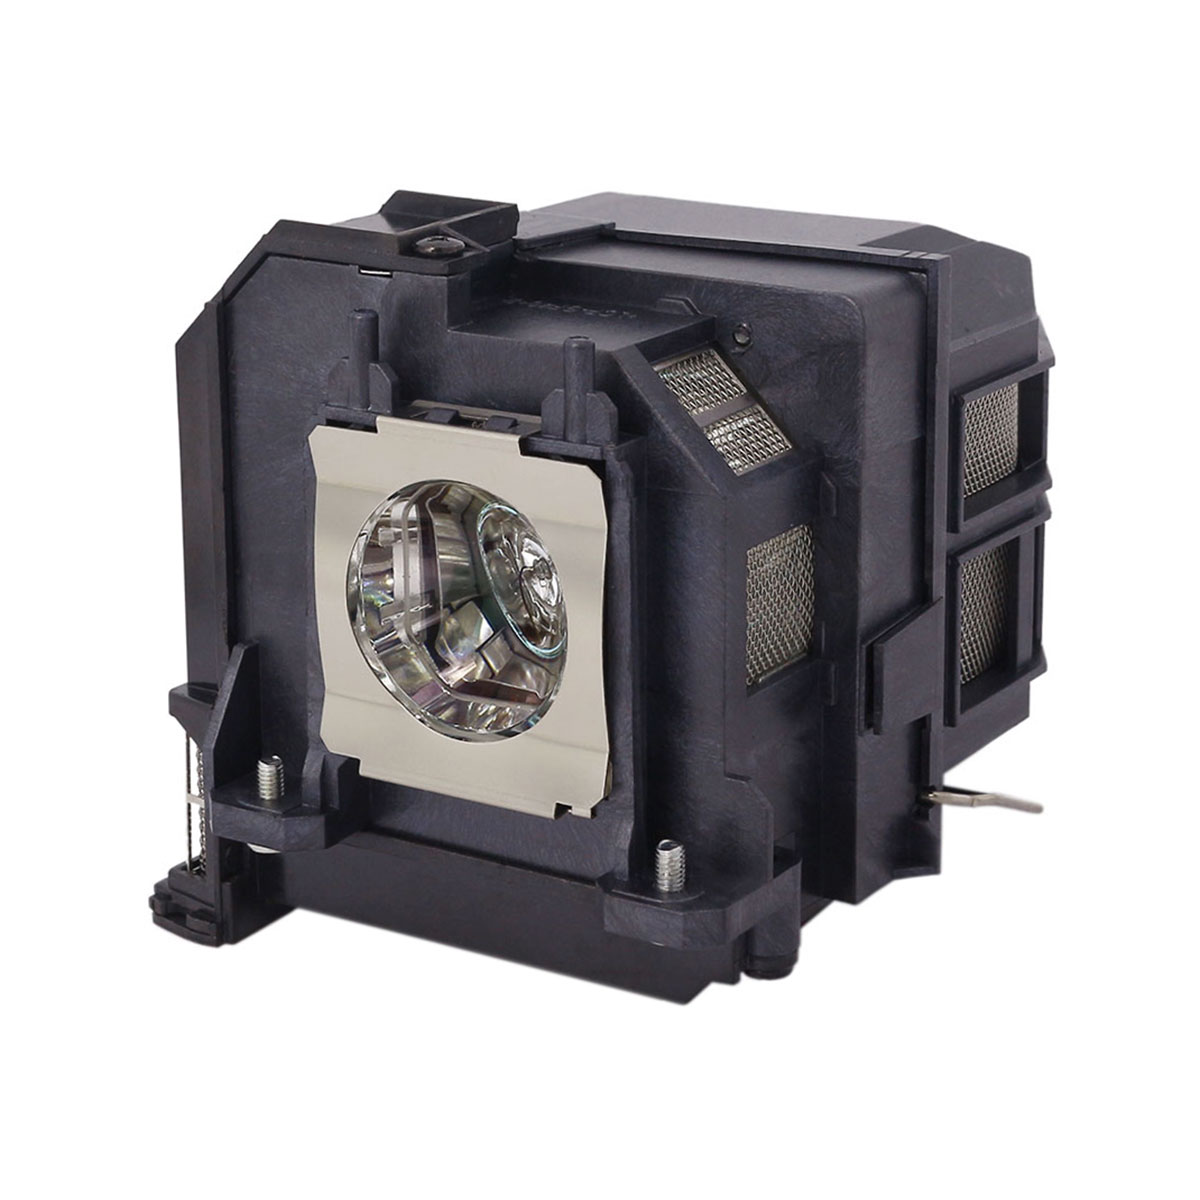 Lutema Platinum for Epson ELPLP91 Projector Lamp with Housing (Original Philips Bulb Inside) - image 5 of 5